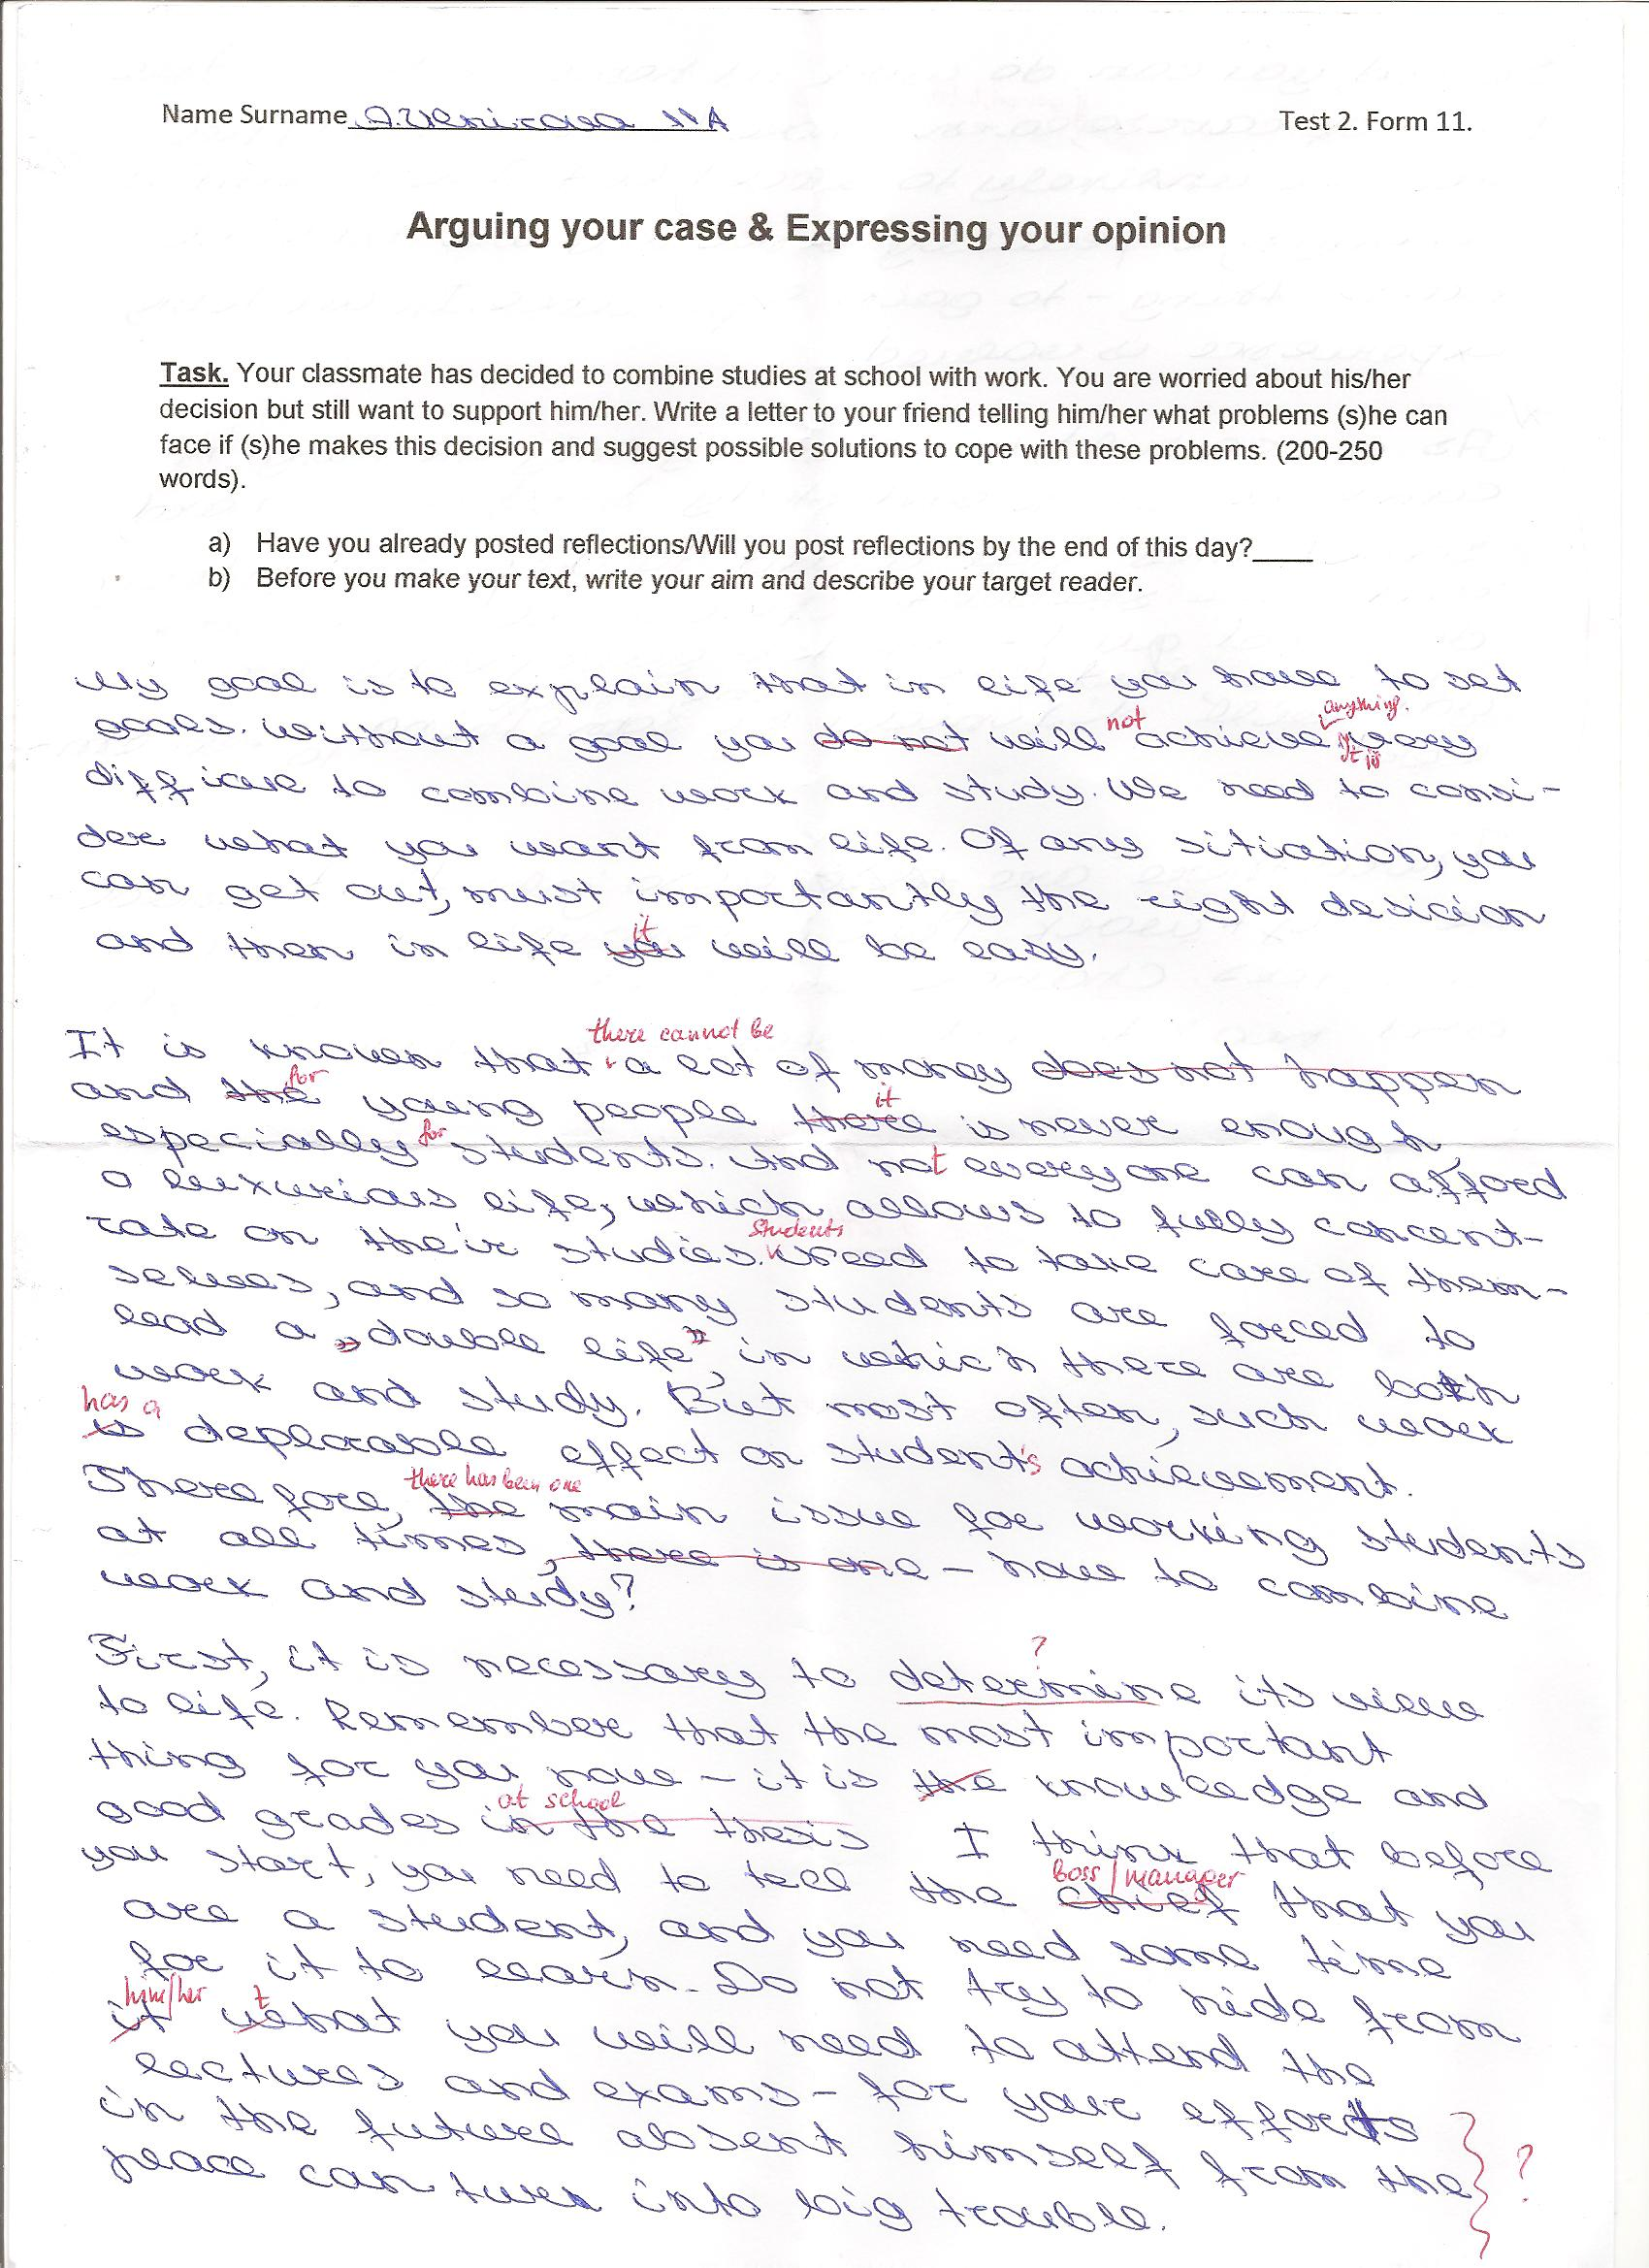 personal motivation essay mba That's where mba personal statement samples become a major asset to your application sample mba essays show you how to write a great essay.